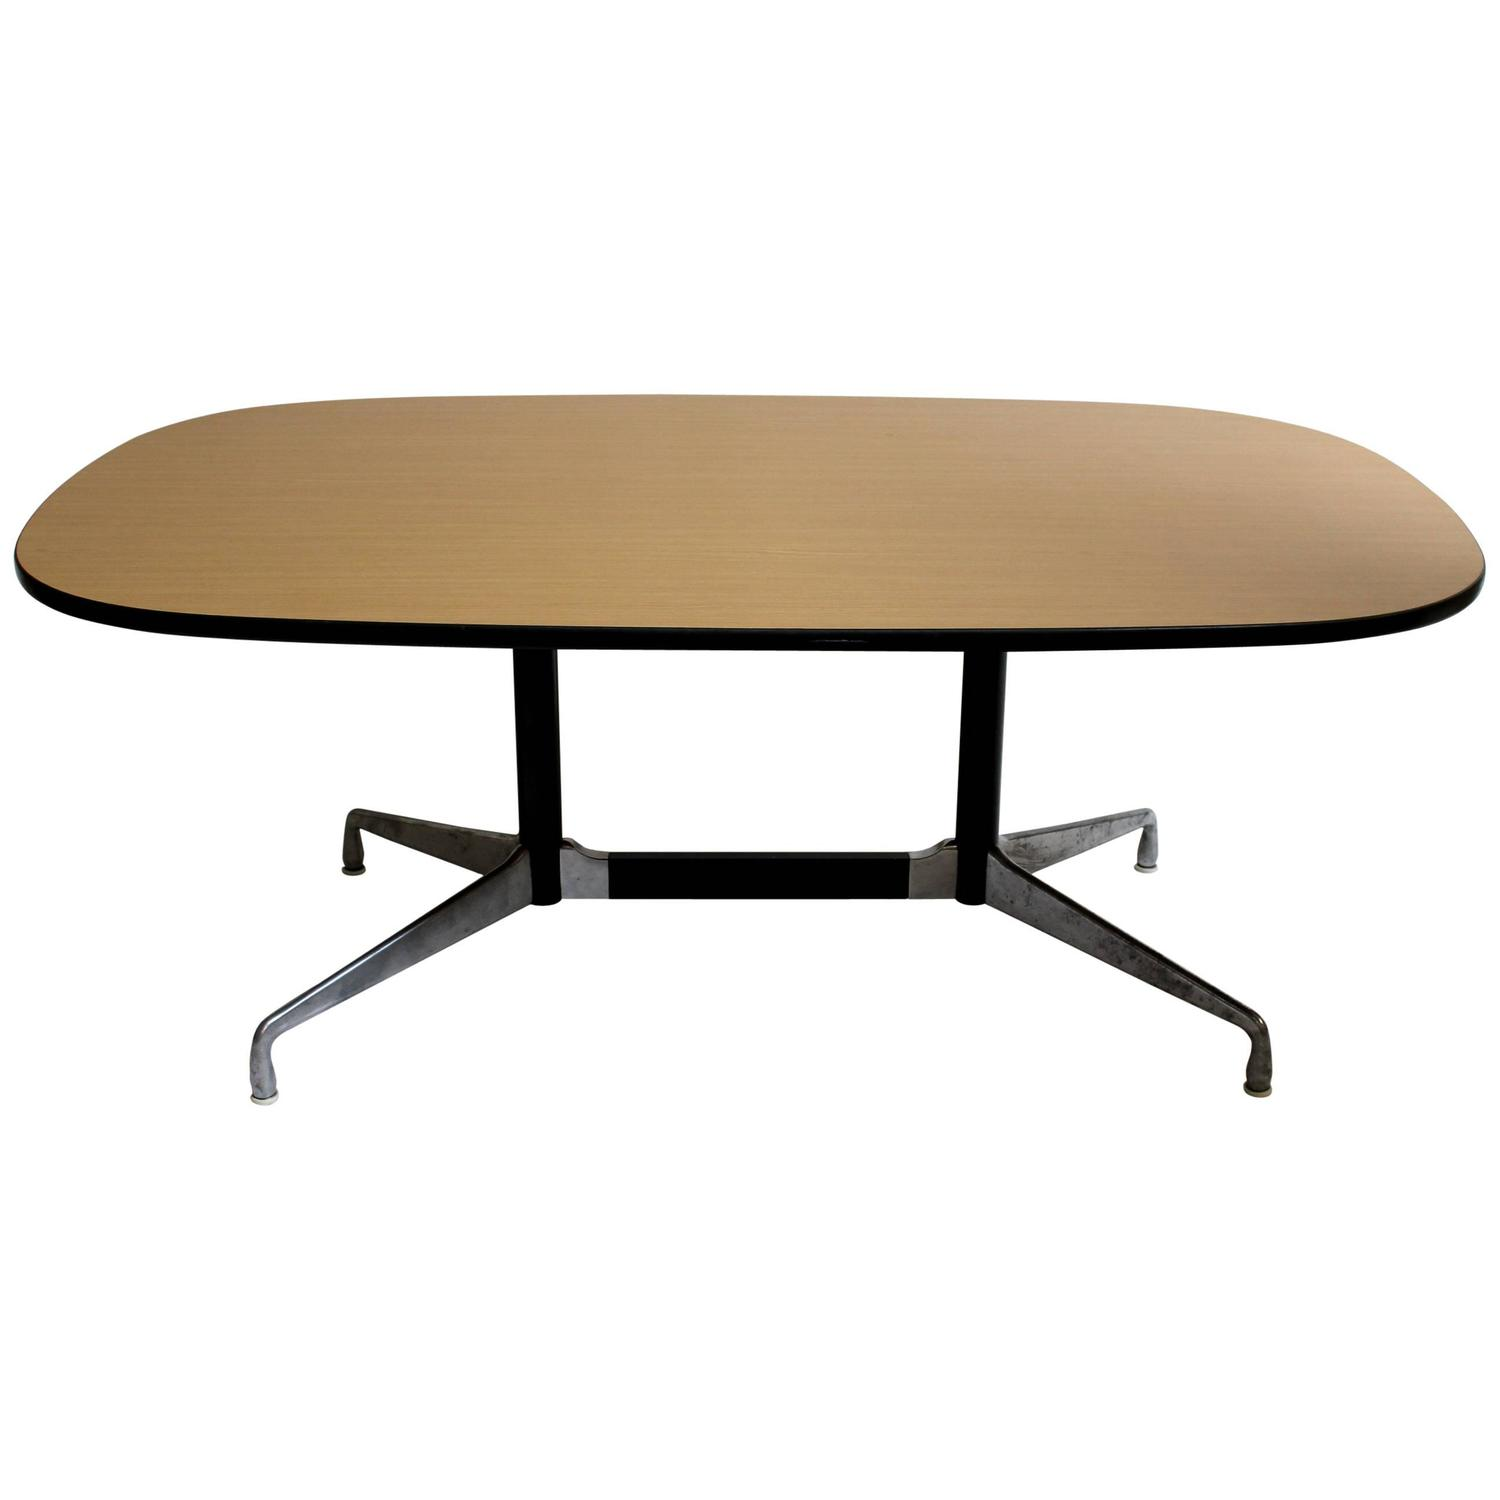 ray and charles eames for herman miller modern dining conference table at 1stdibs. Black Bedroom Furniture Sets. Home Design Ideas